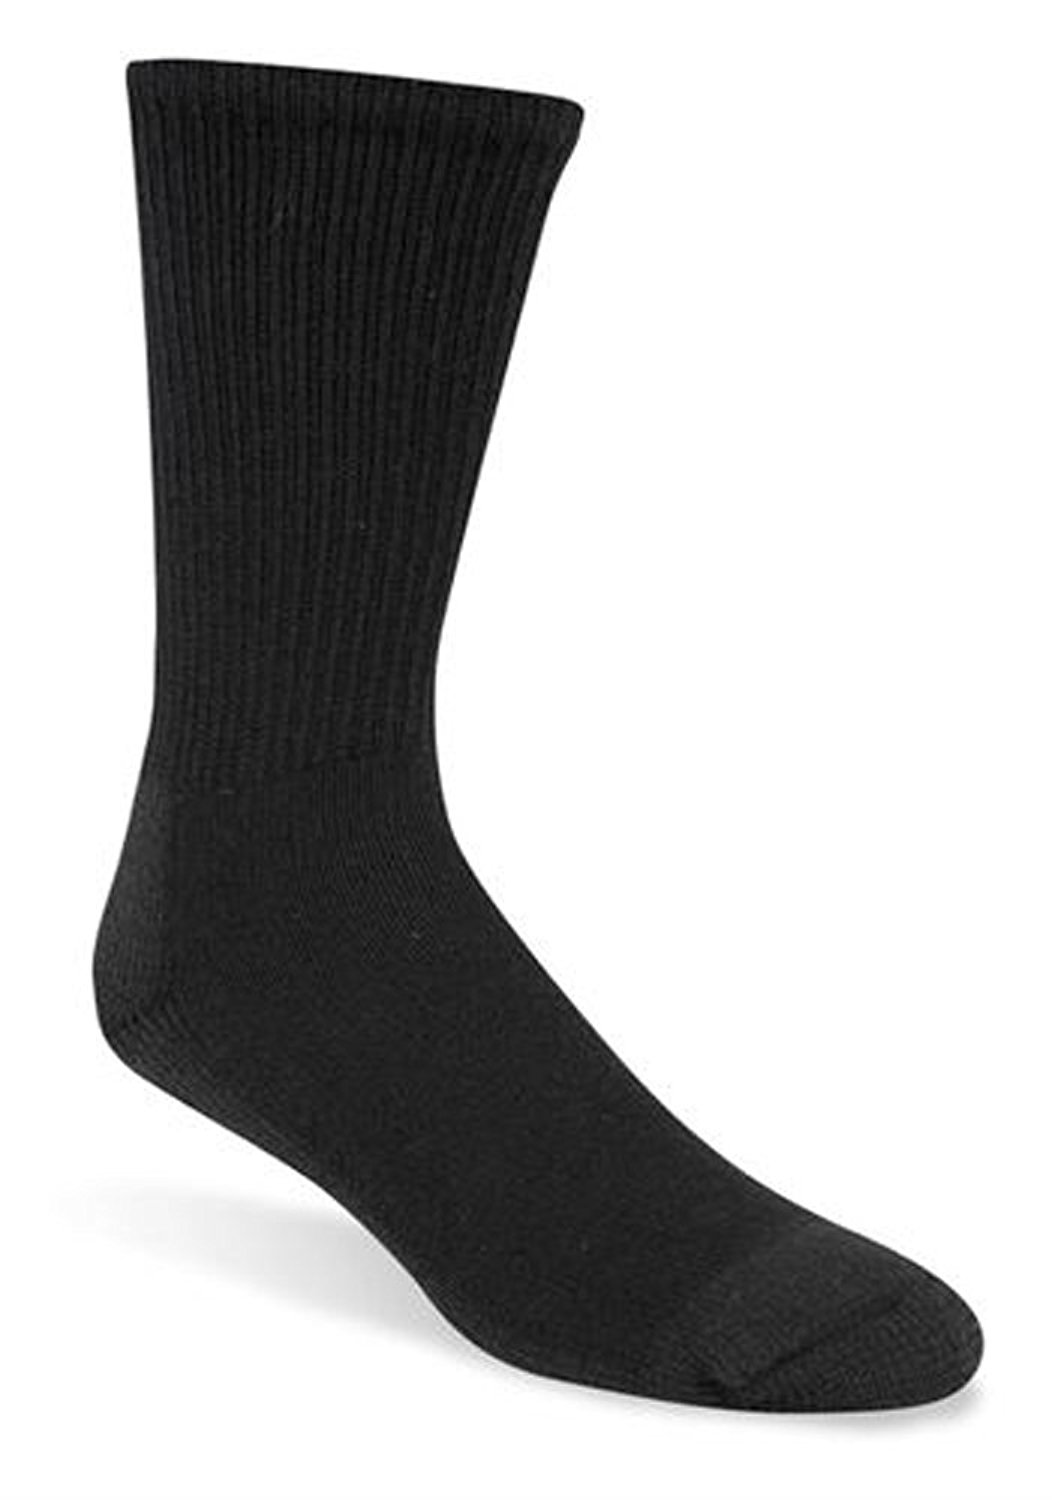 6ffb5cadc Get Quotations · Wigwam At Work Steel Toe Socks